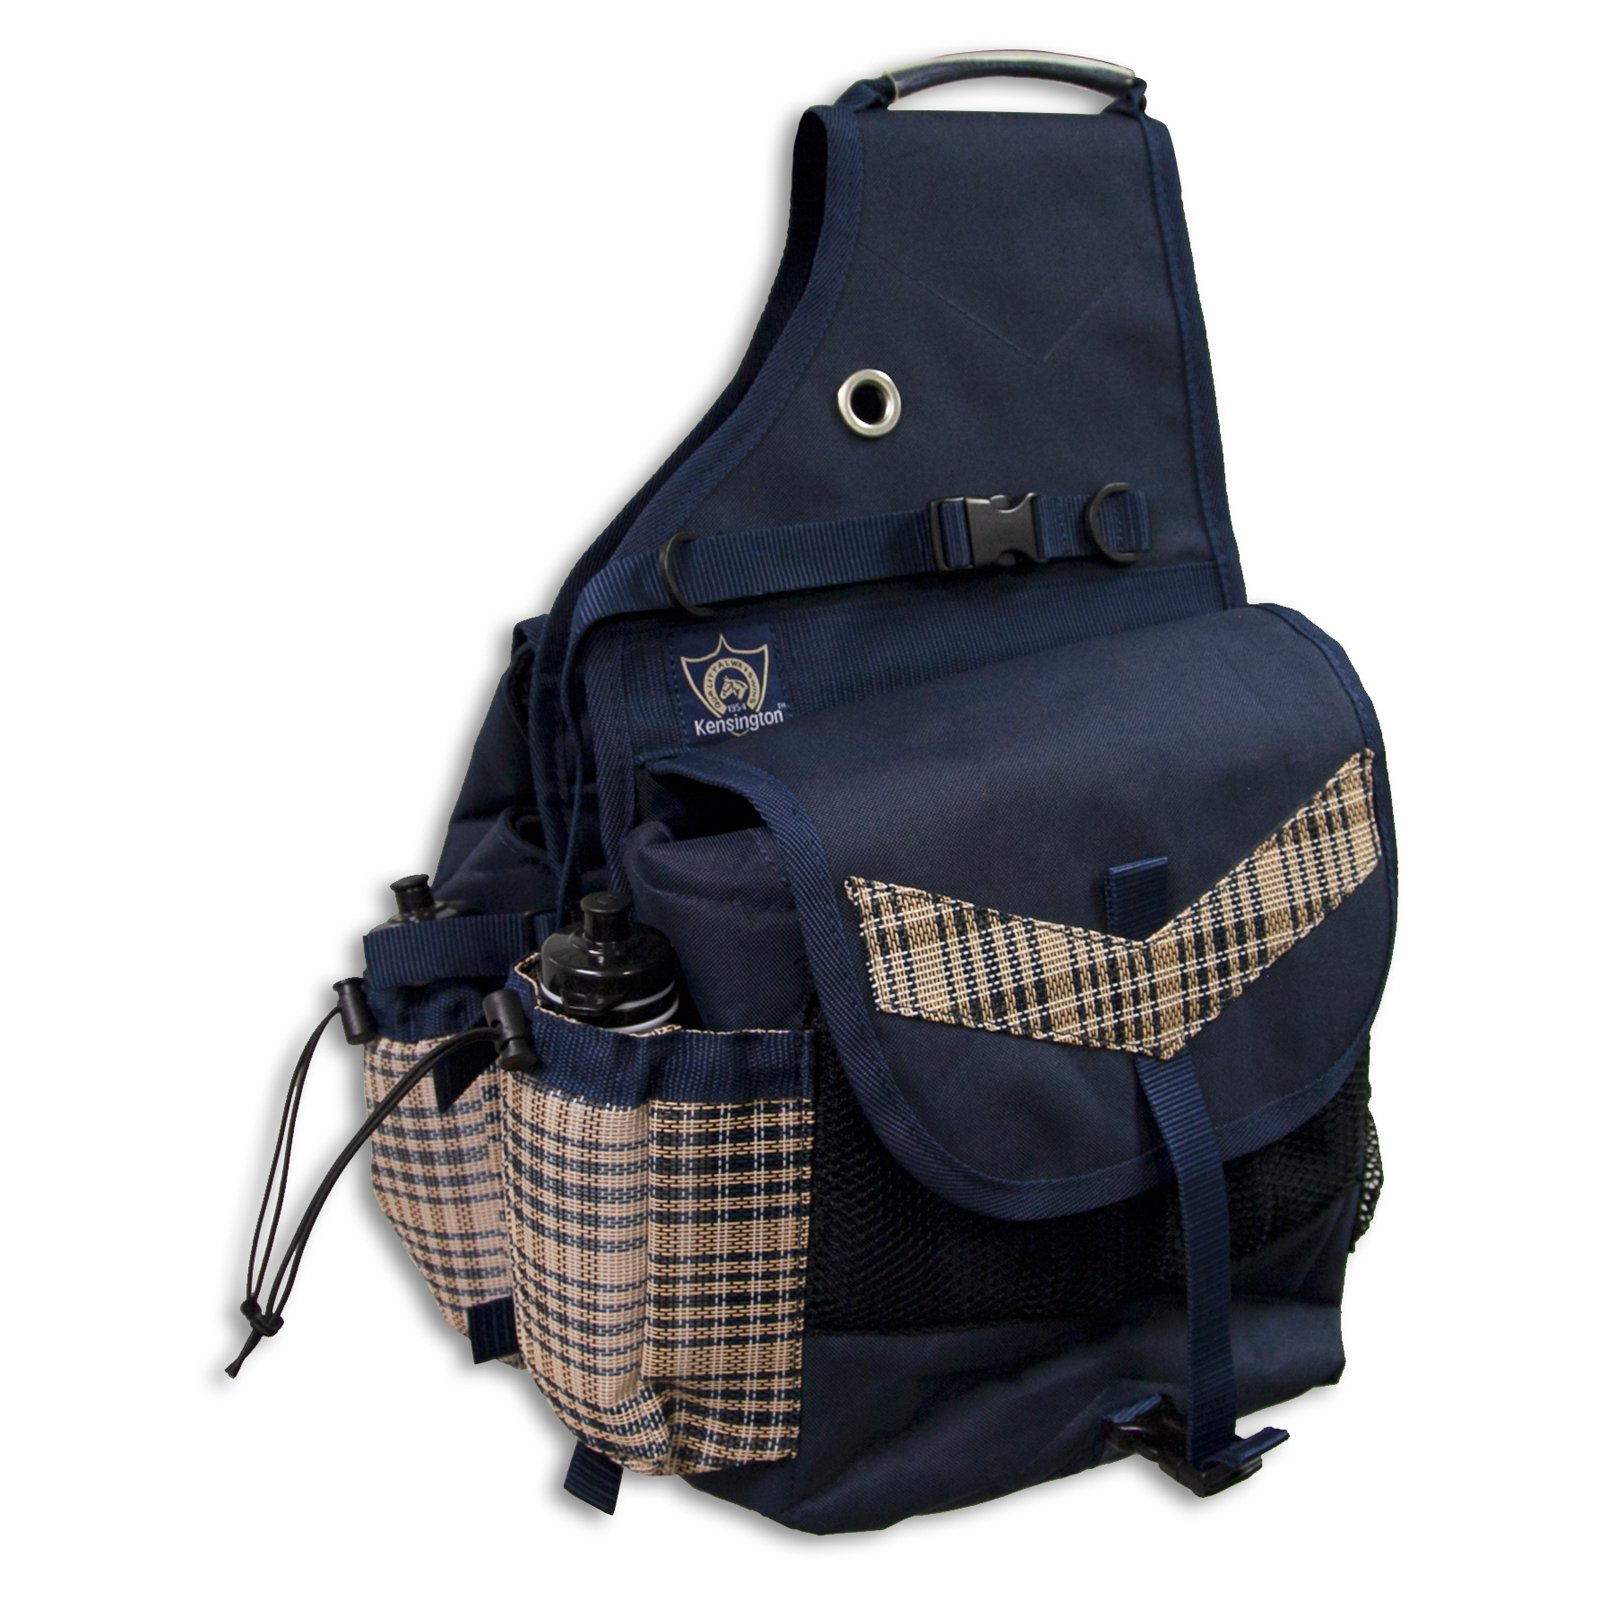 Kensington Protective Products Insulated Western Saddle Bag with Bottles